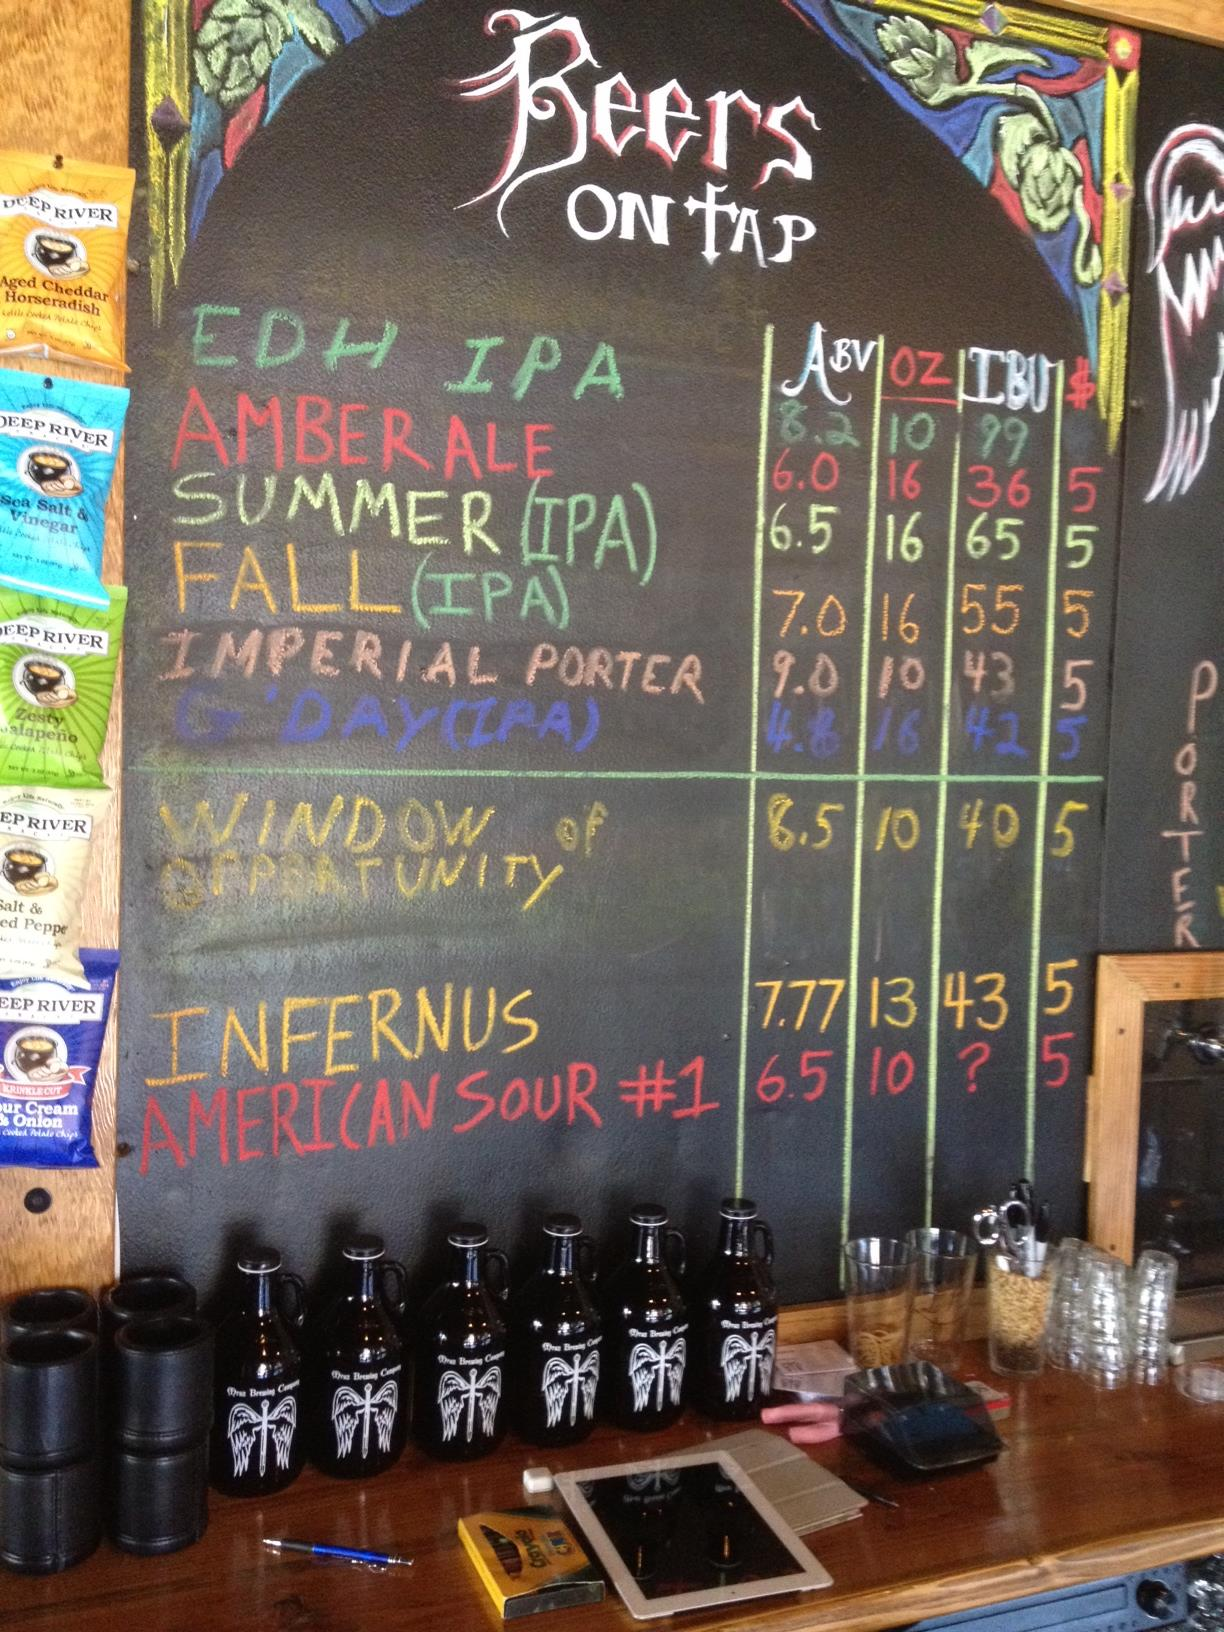 Beers on tap for today!